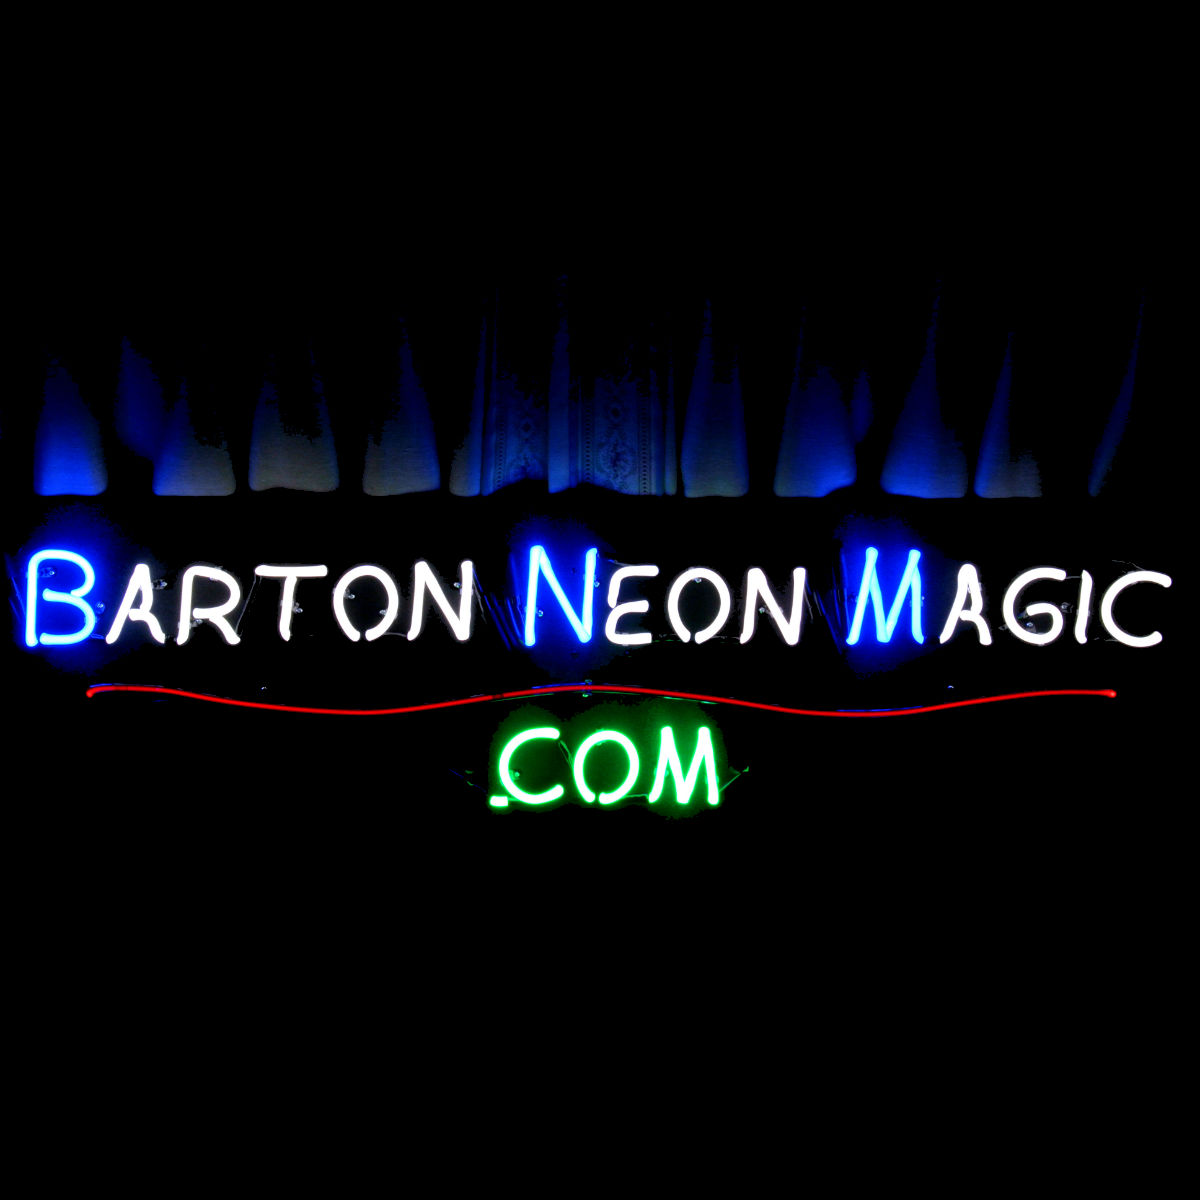 Custom Neon Signs and Neon Art by John Barton - BartonNeonMagic.com